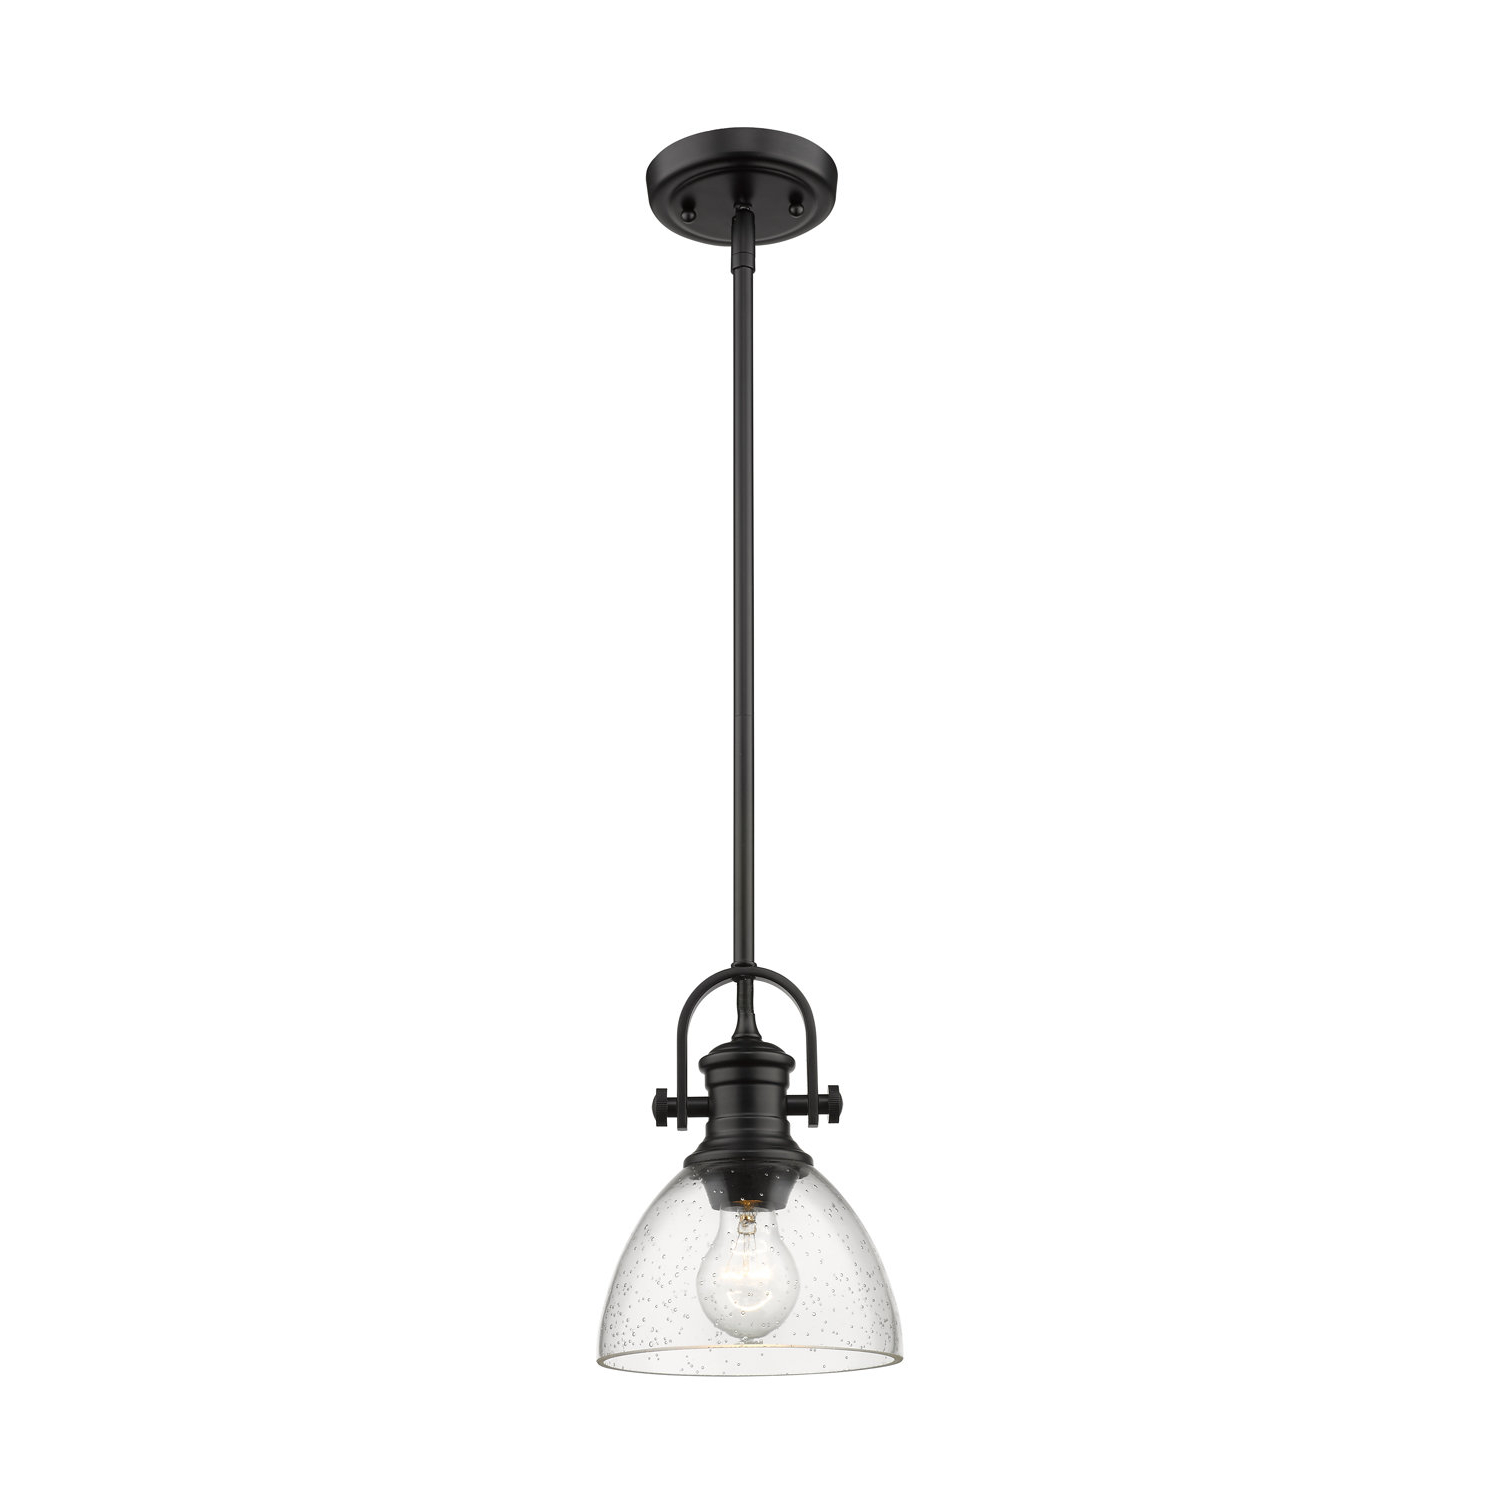 Most Popular Vedder 1 Light Single Bell Pendant For 1 Light Single Bell Pendants (View 10 of 20)